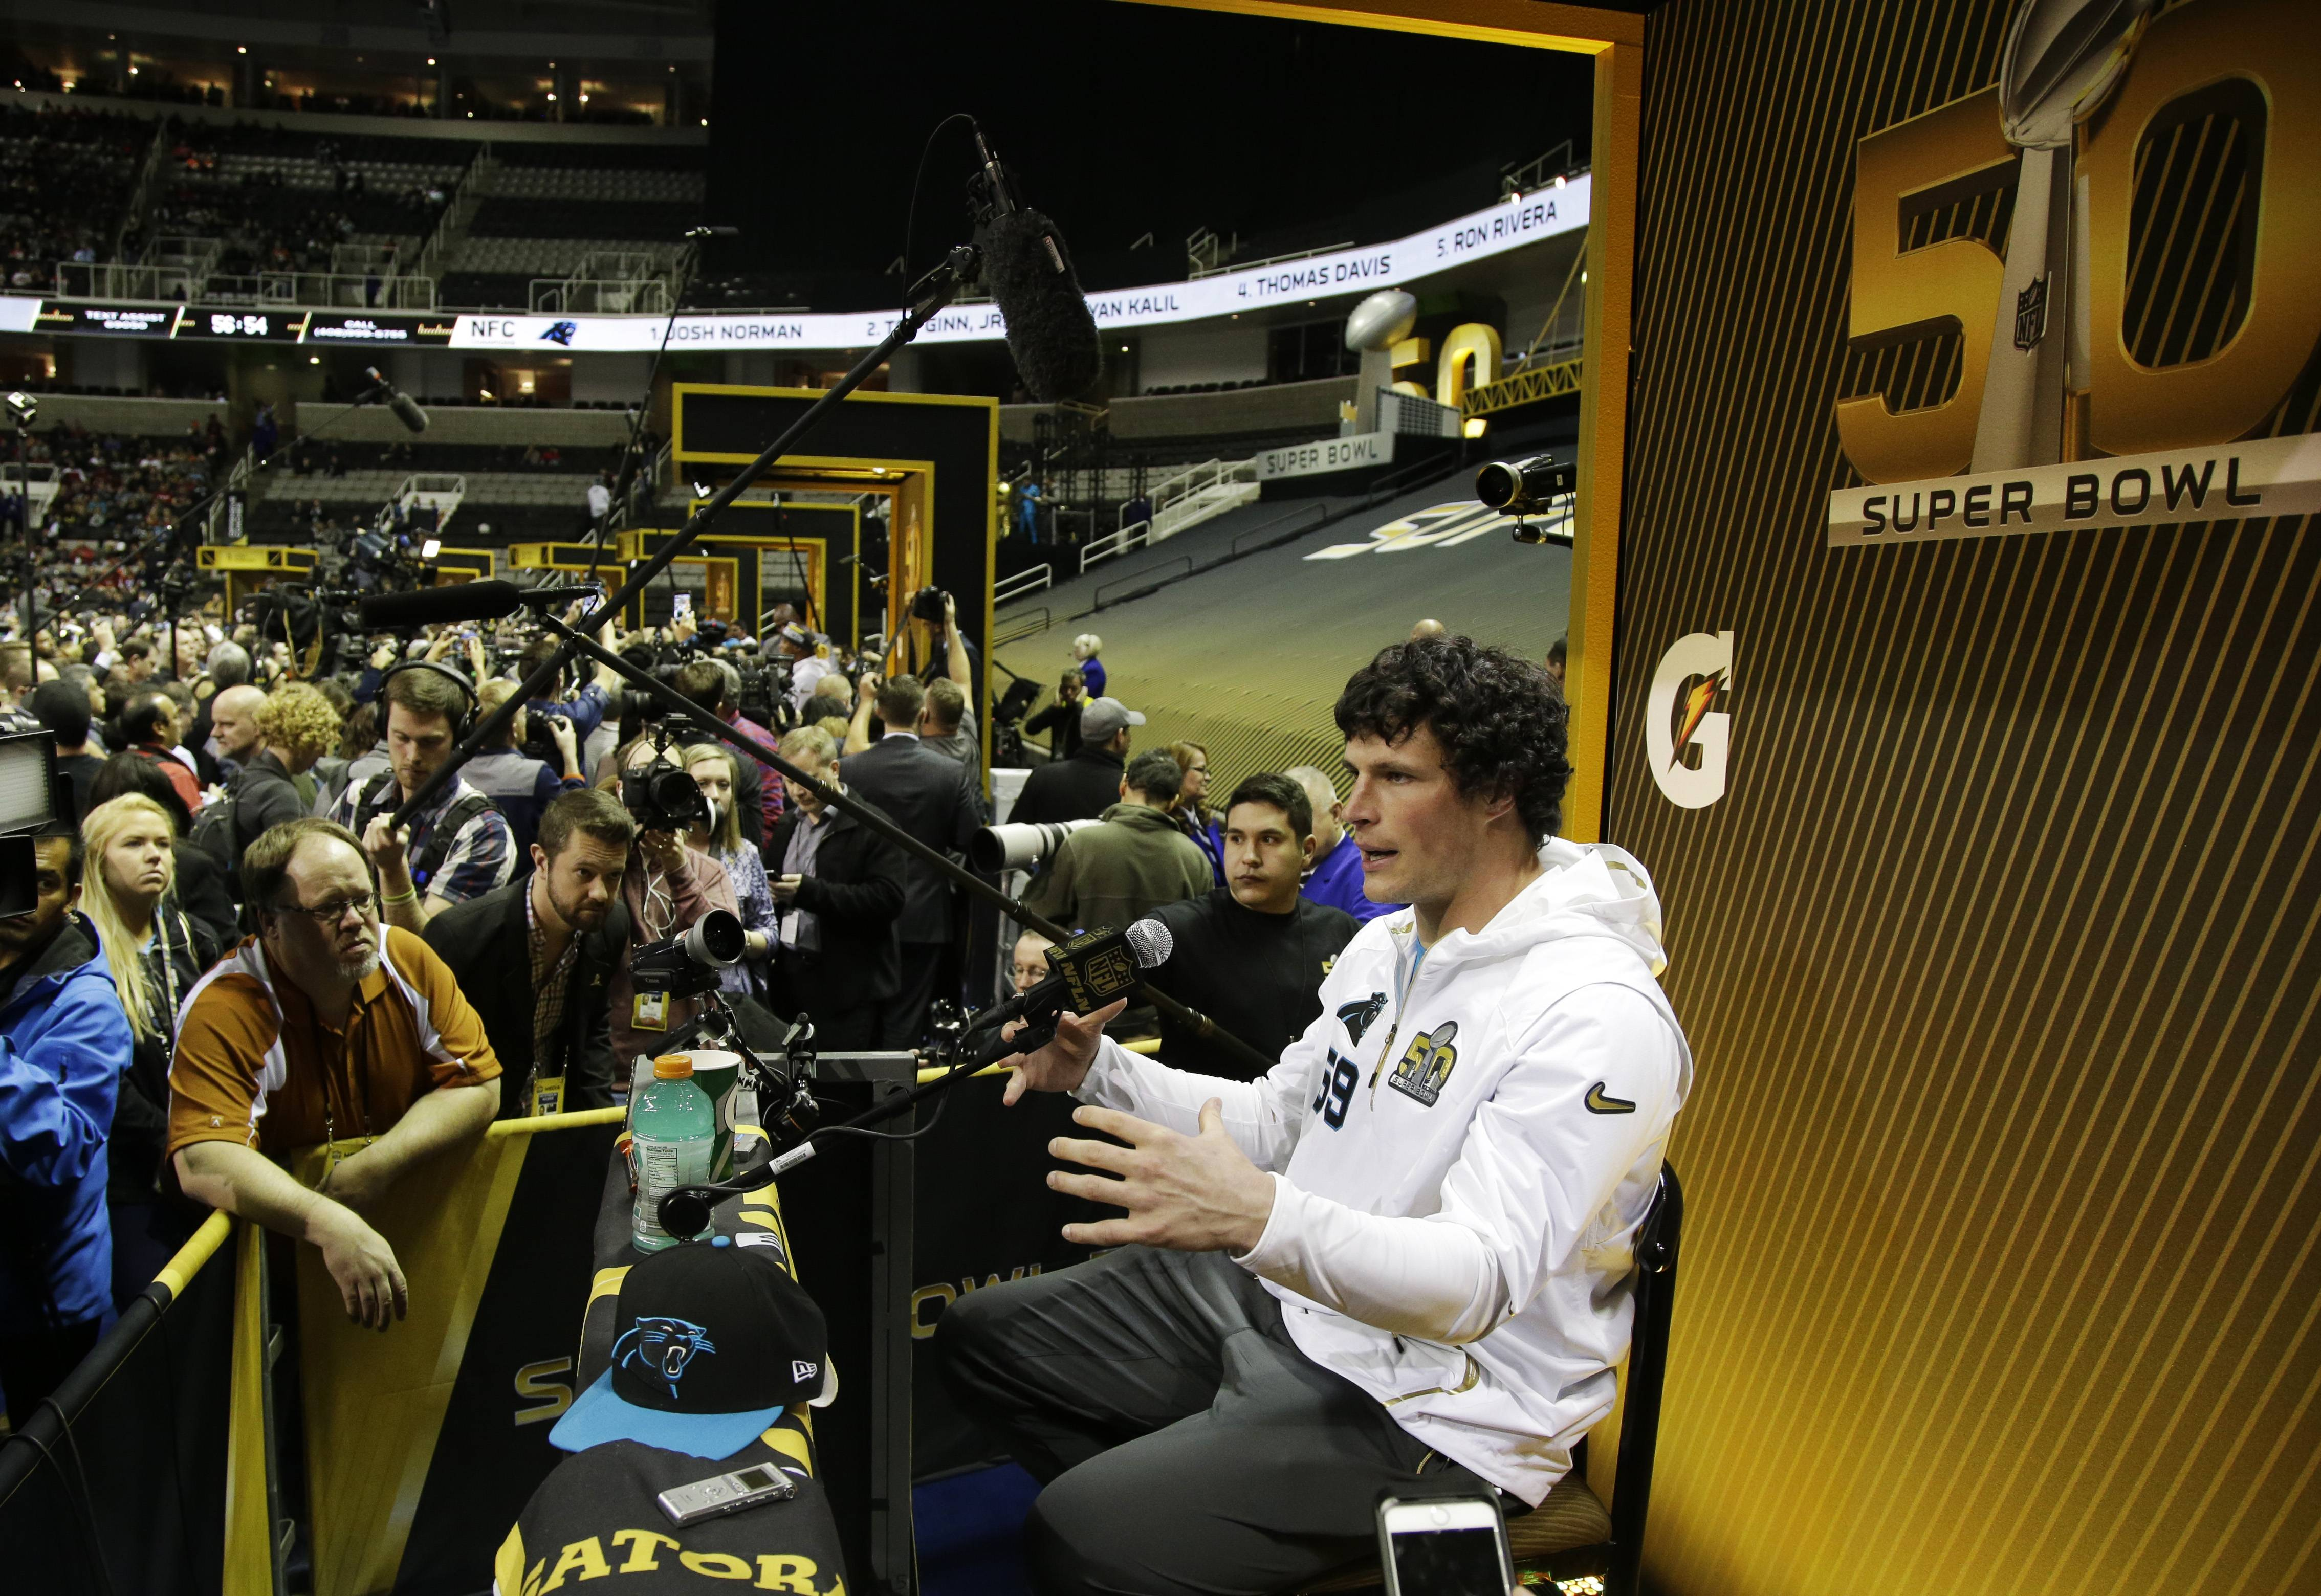 Carolina Panthers middle linebacker Luke Kuechly speaks to reporters during Opening Night for the NFL Super Bowl 50 football game Monday, Feb. 1, 2016, in San Jose, Calif. Kuechly will present a huge challenge for Denver Broncos quarterback Peyton Manning in Sunday's game.